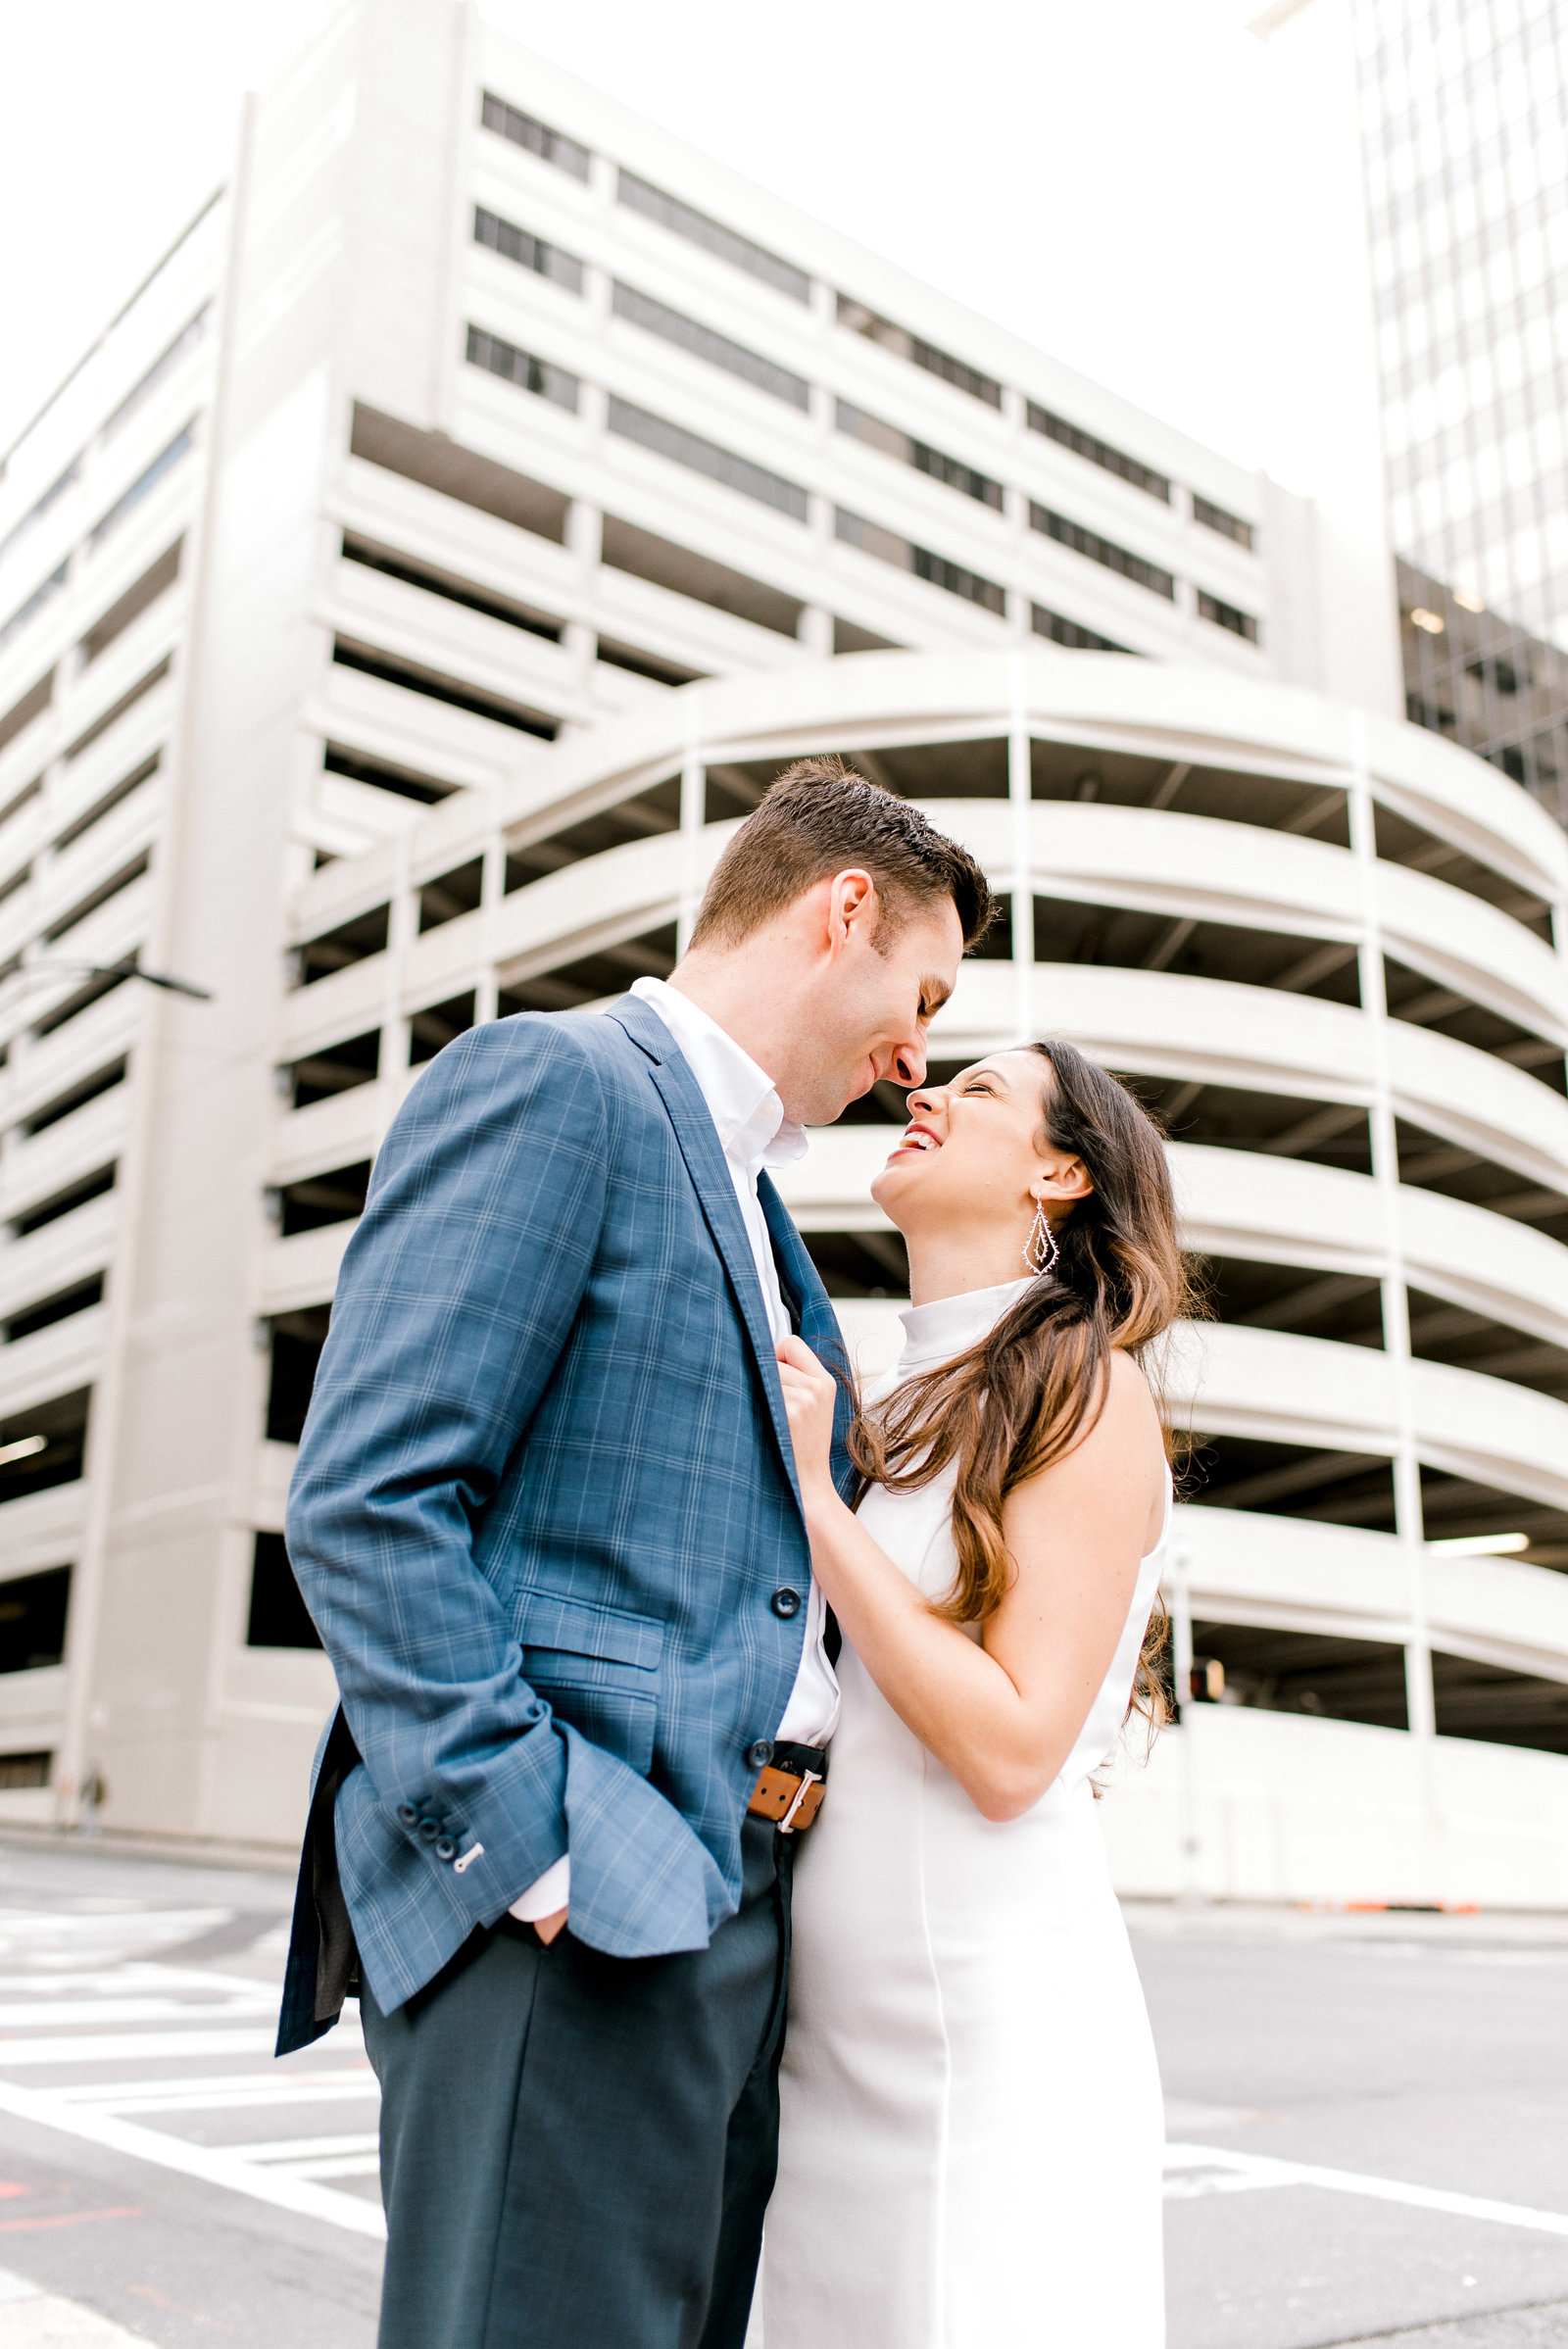 charlotte-engagement-candid-photographer-ballantyne-hotel-uptown-clt-weddings-bride-style-me-pretty-session-wedding-fine-art-bright-and-airy-film-photographer-alyssa-frost-photography-3